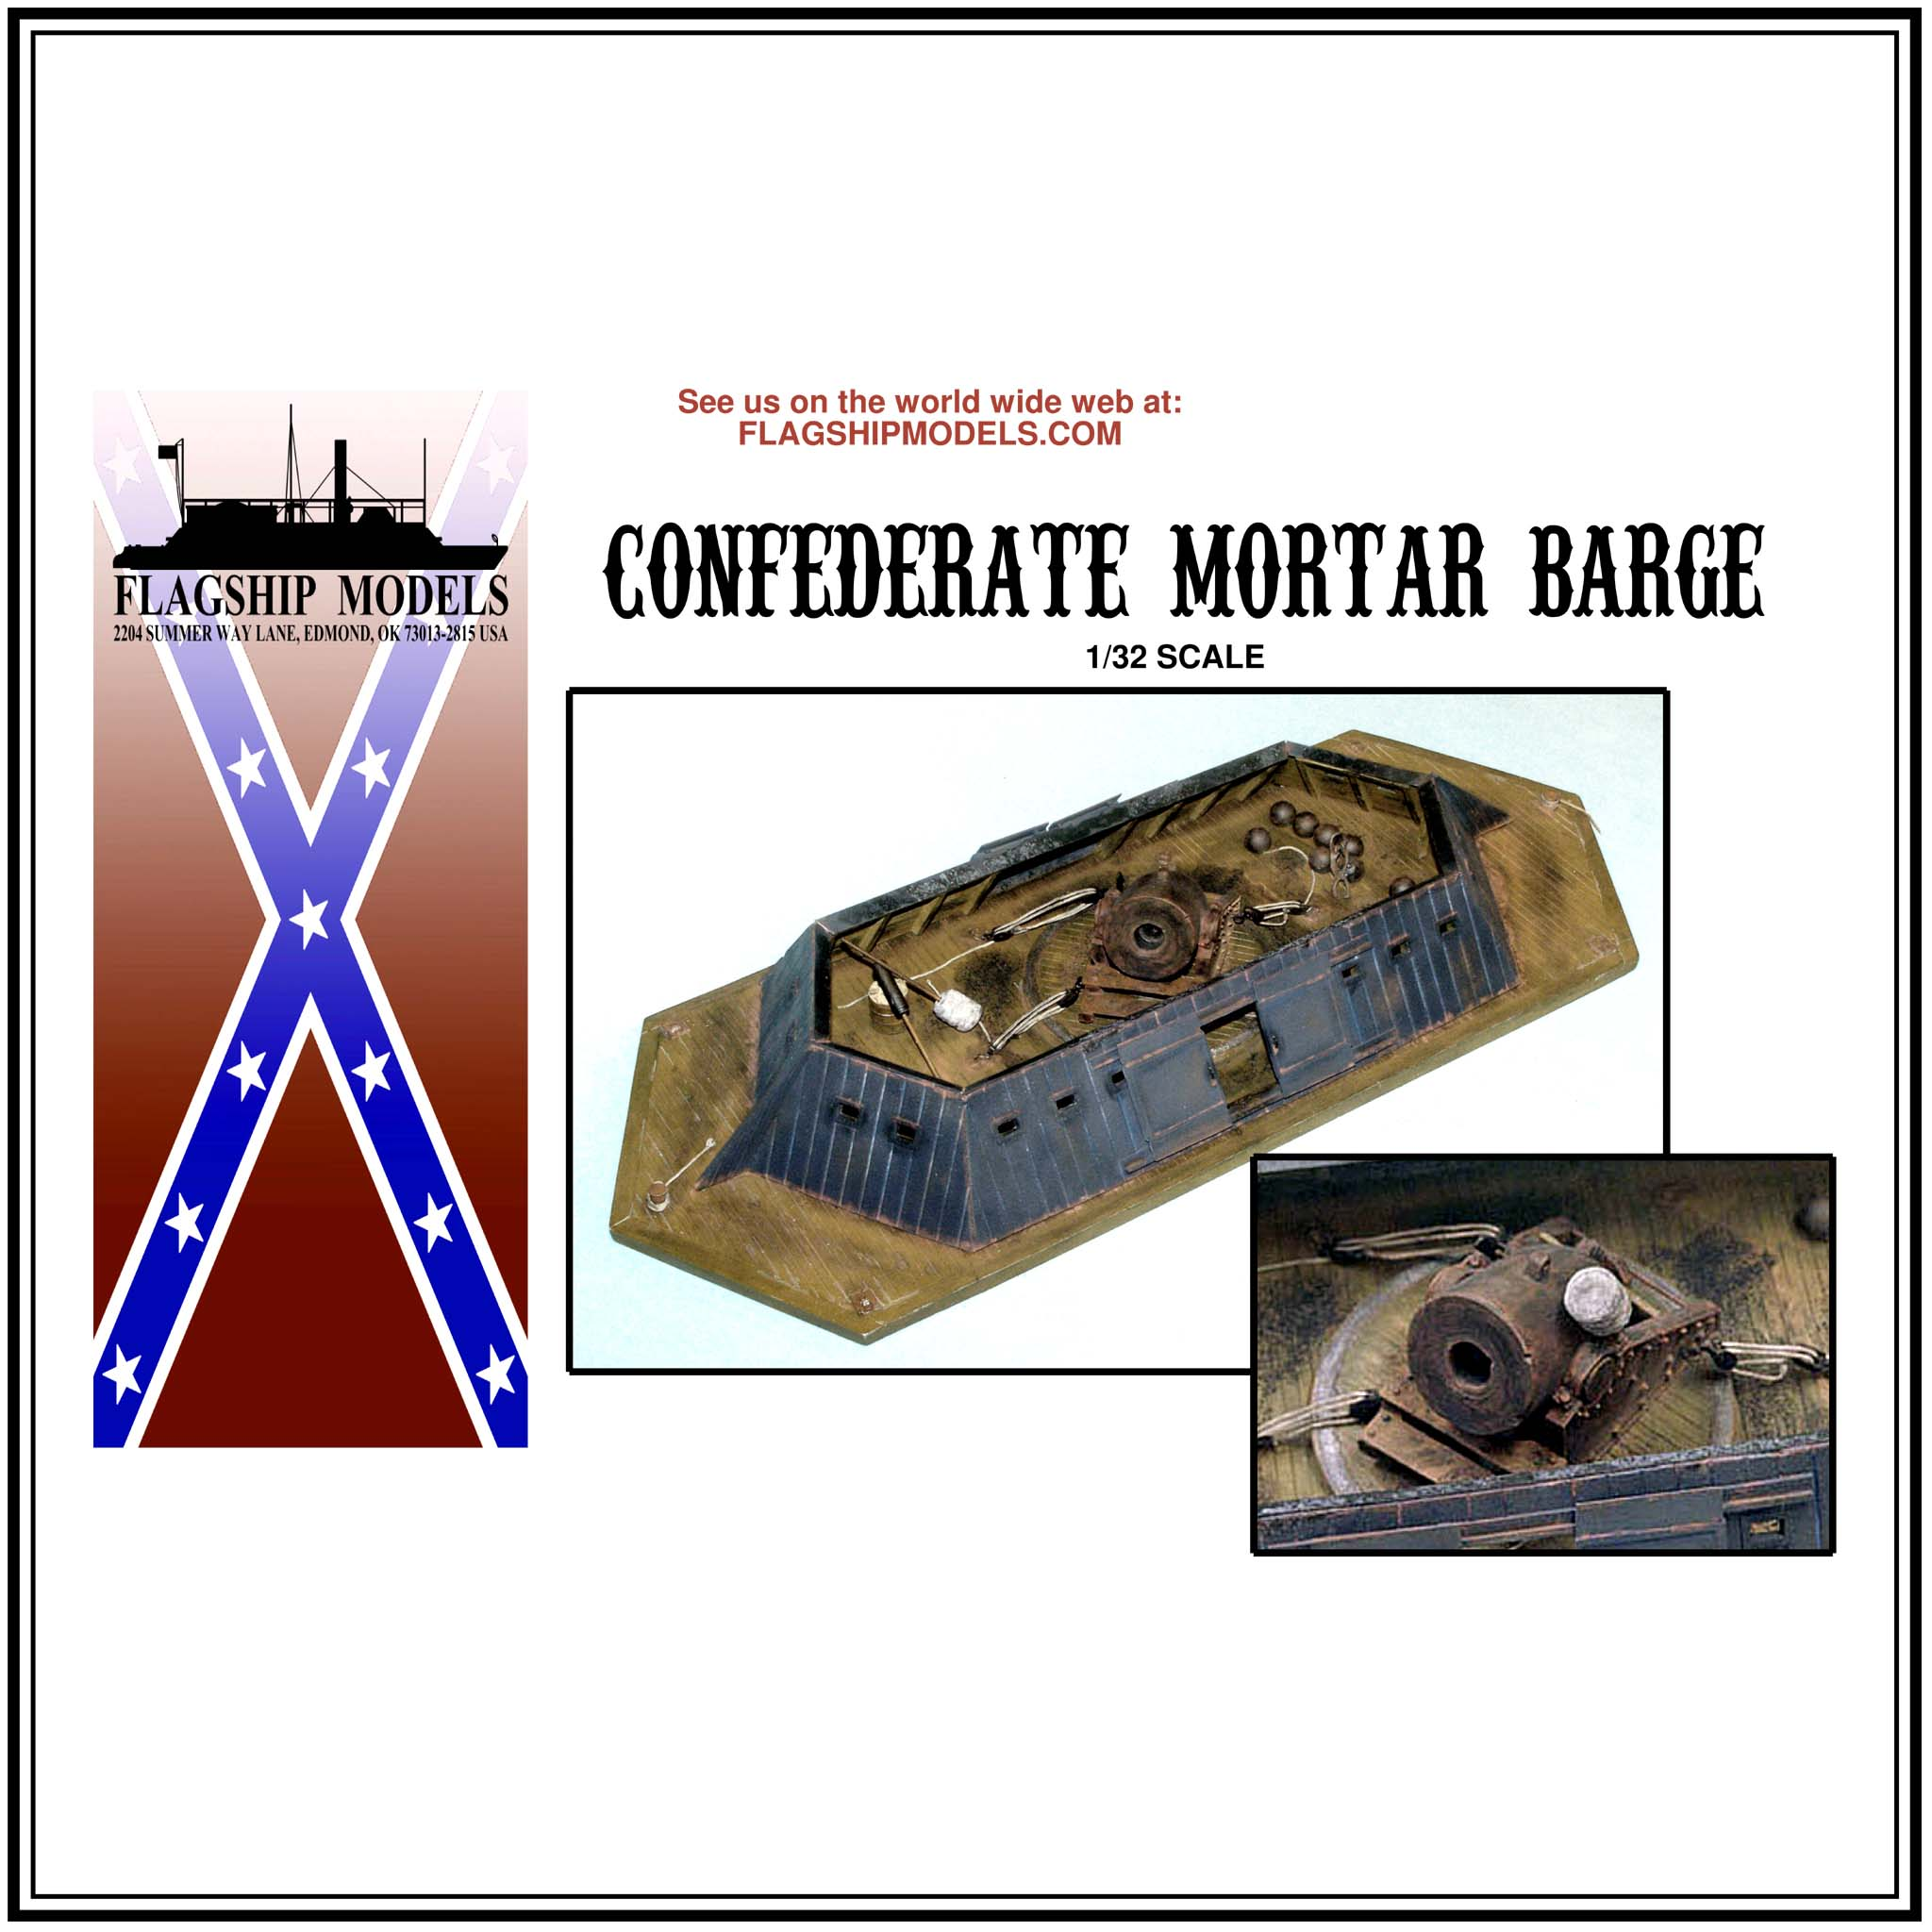 "CONFEDERATE MORTAR BARGE WITH MORTAR (14.5"" long)"